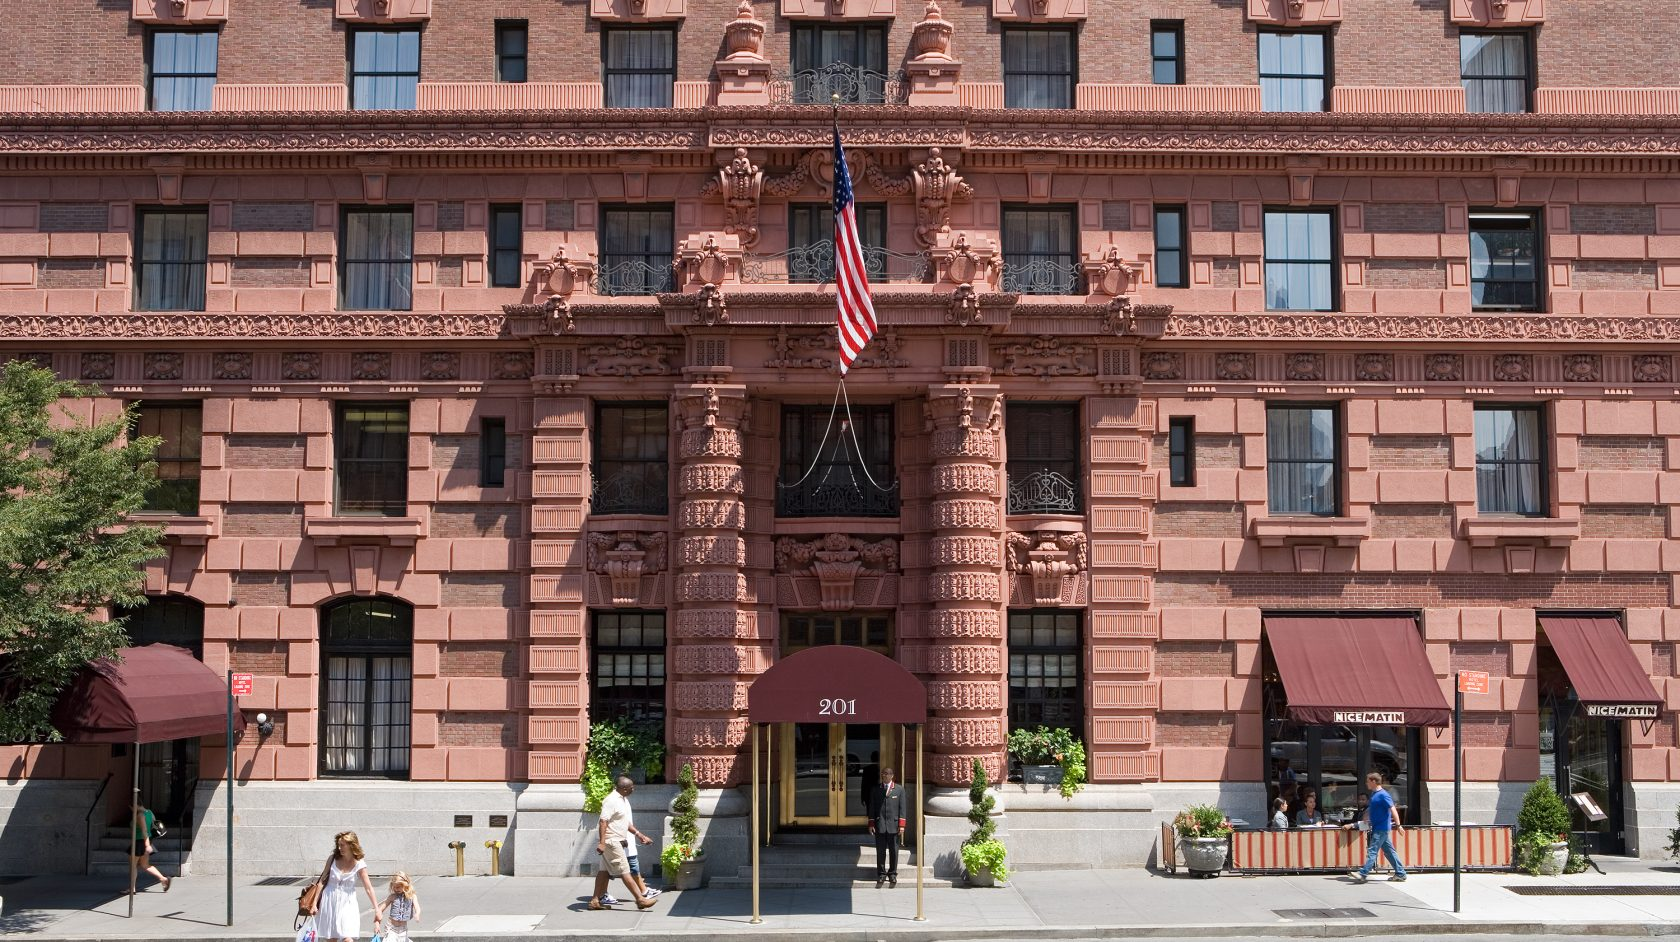 Image of the Lucerne Hotel in NYC